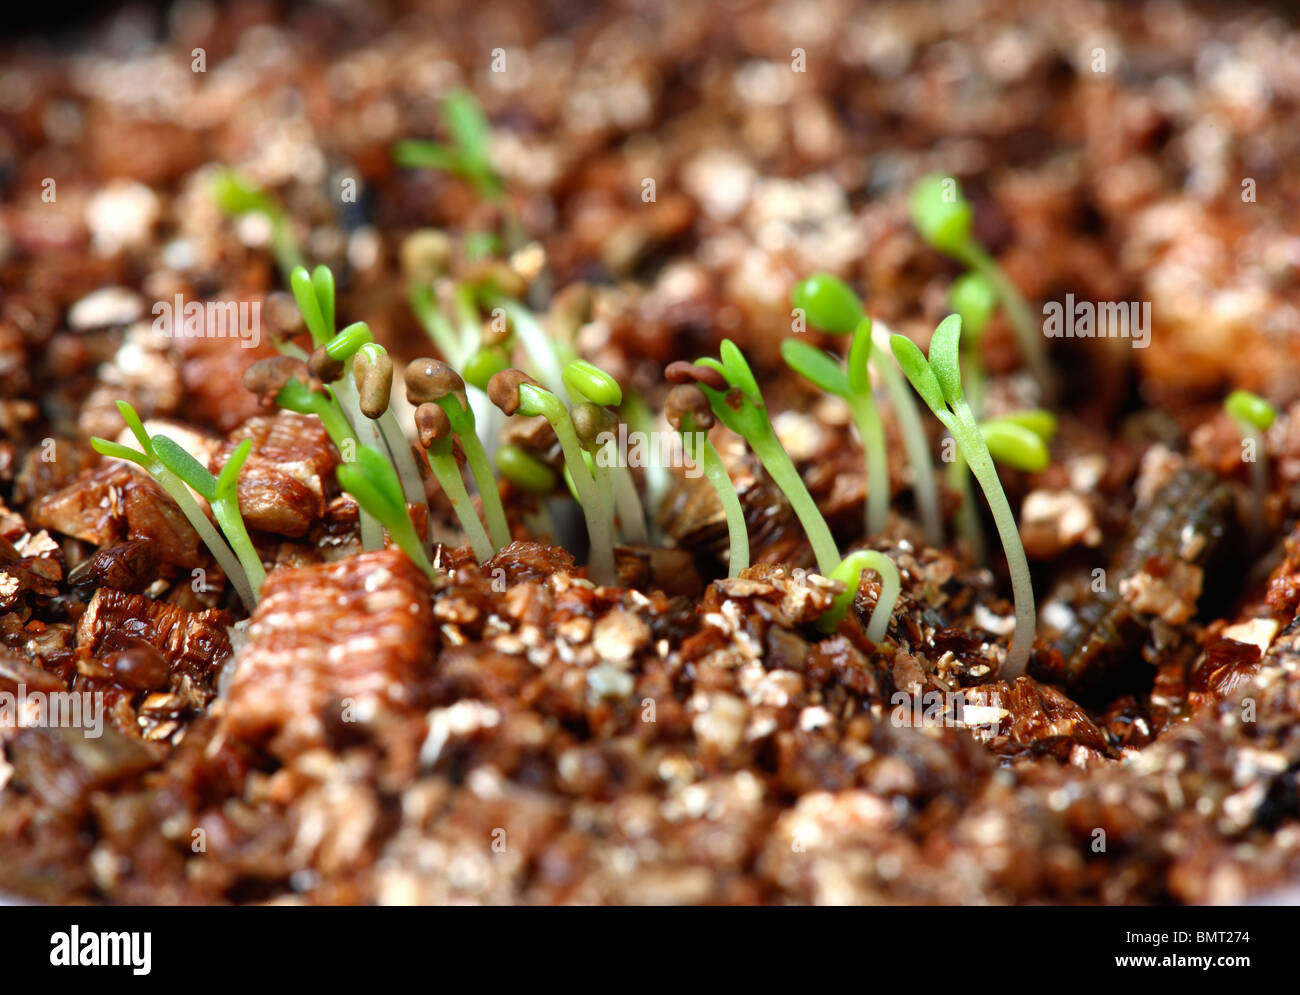 germ bud of clover, plants at a hotbed, agars - Stock Image